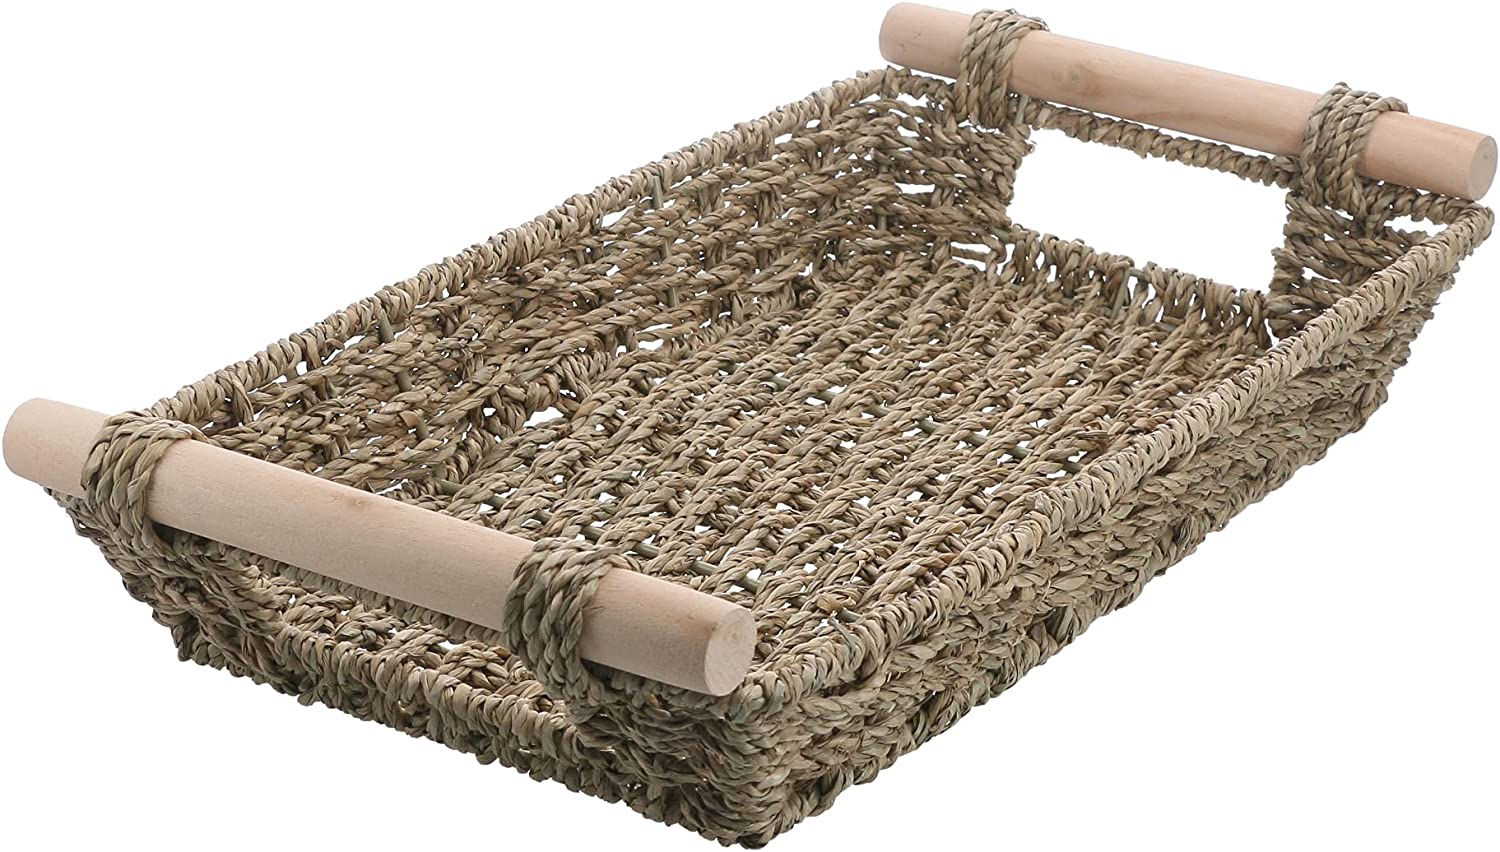 Woven Storage Seagrass Wicker Basket Directly managed store Tray Woode Popular popular with Rectangular